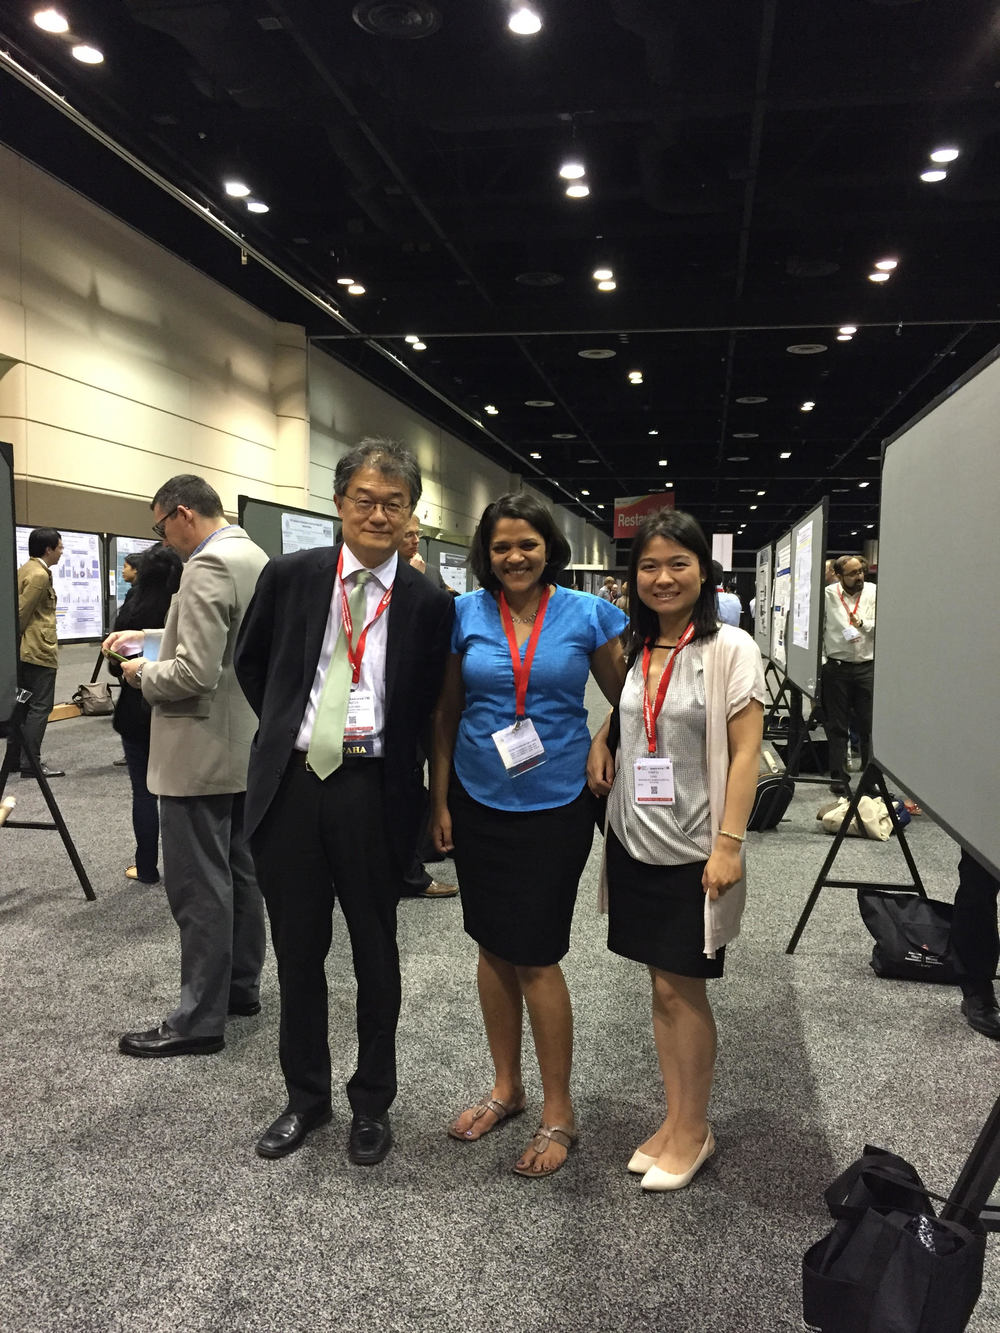 Pictured above (from left to right): Drs. Sadoshima, Nirmala Hariharan, & Yanfei Yang